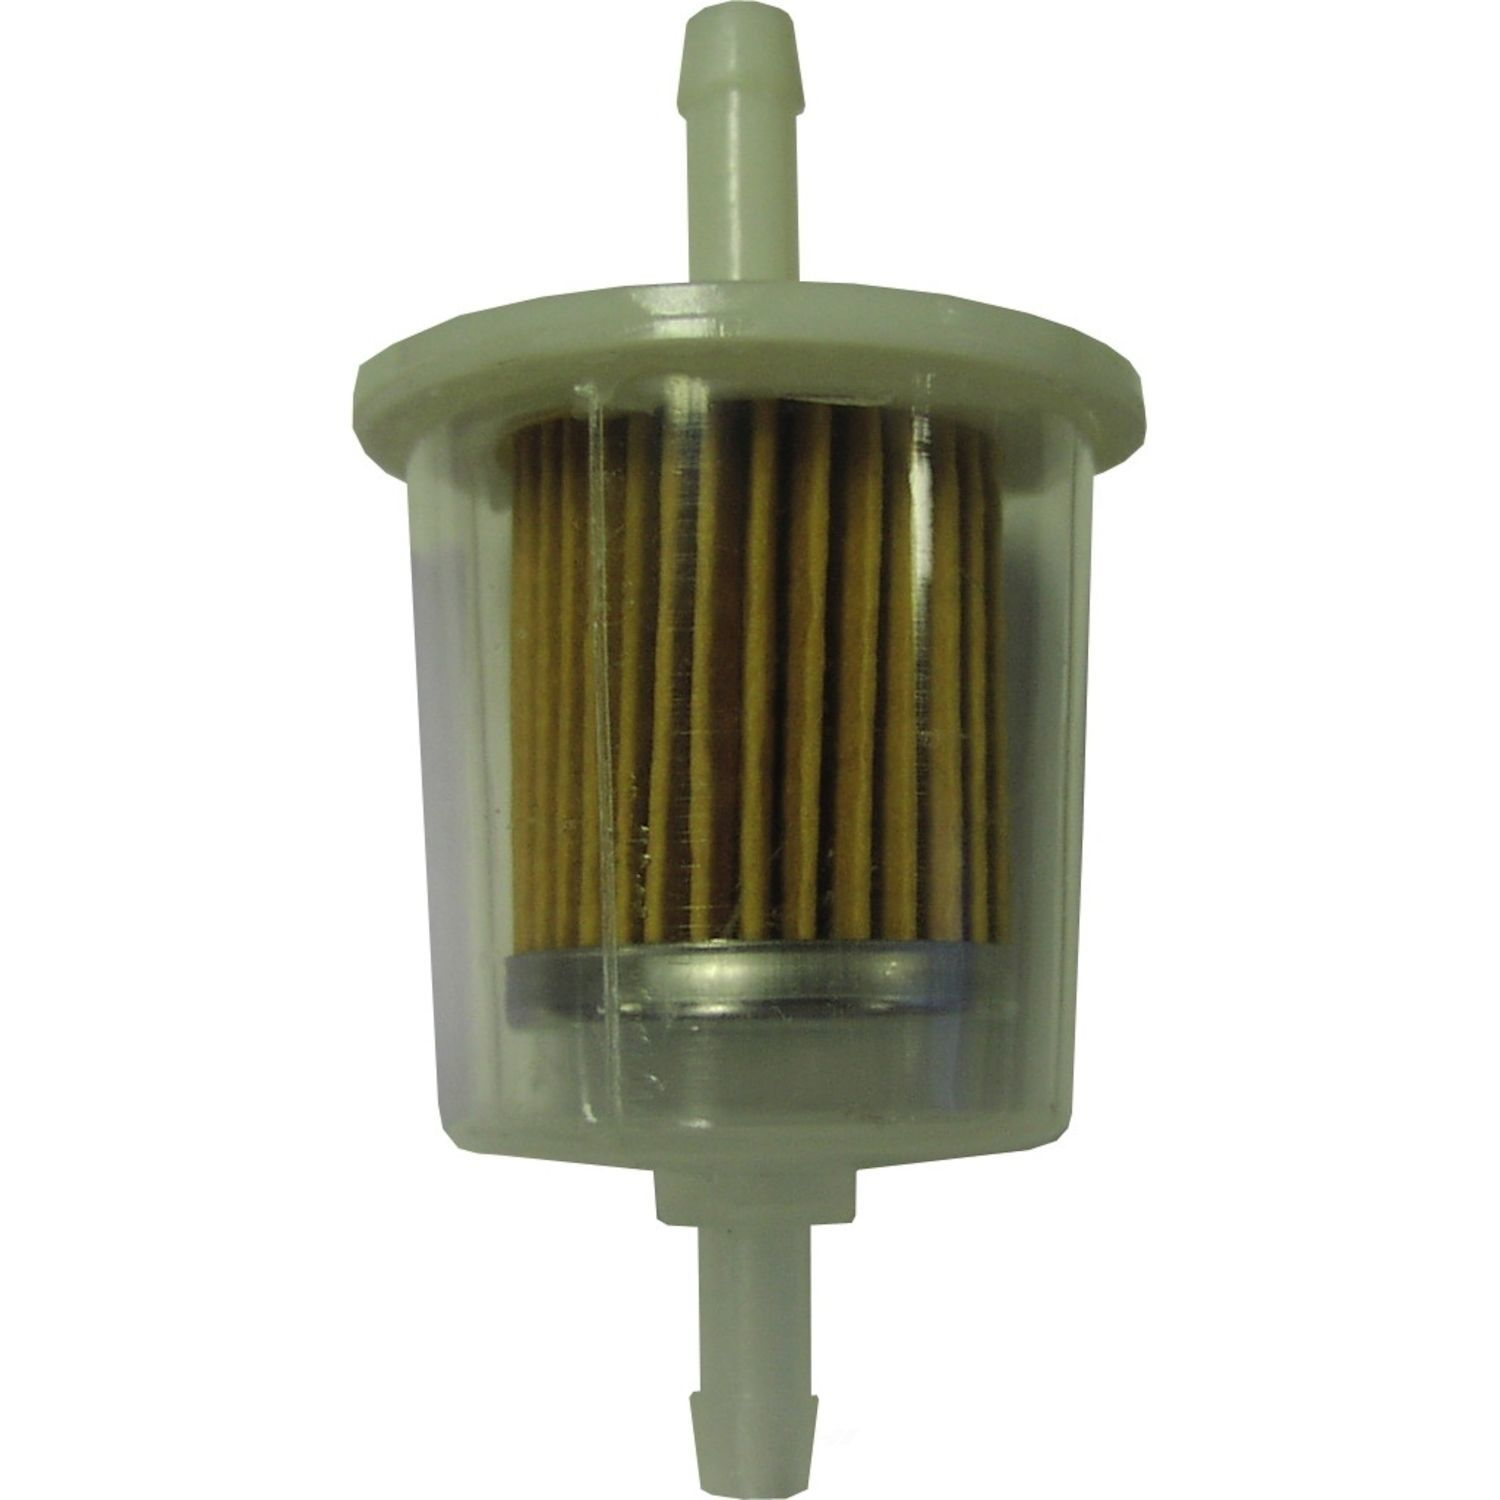 AUTO EXTRA CABIN-FUEL-TRANS FILTERS/US - Universal Type Fuel Filter - AXS 616-33032PL